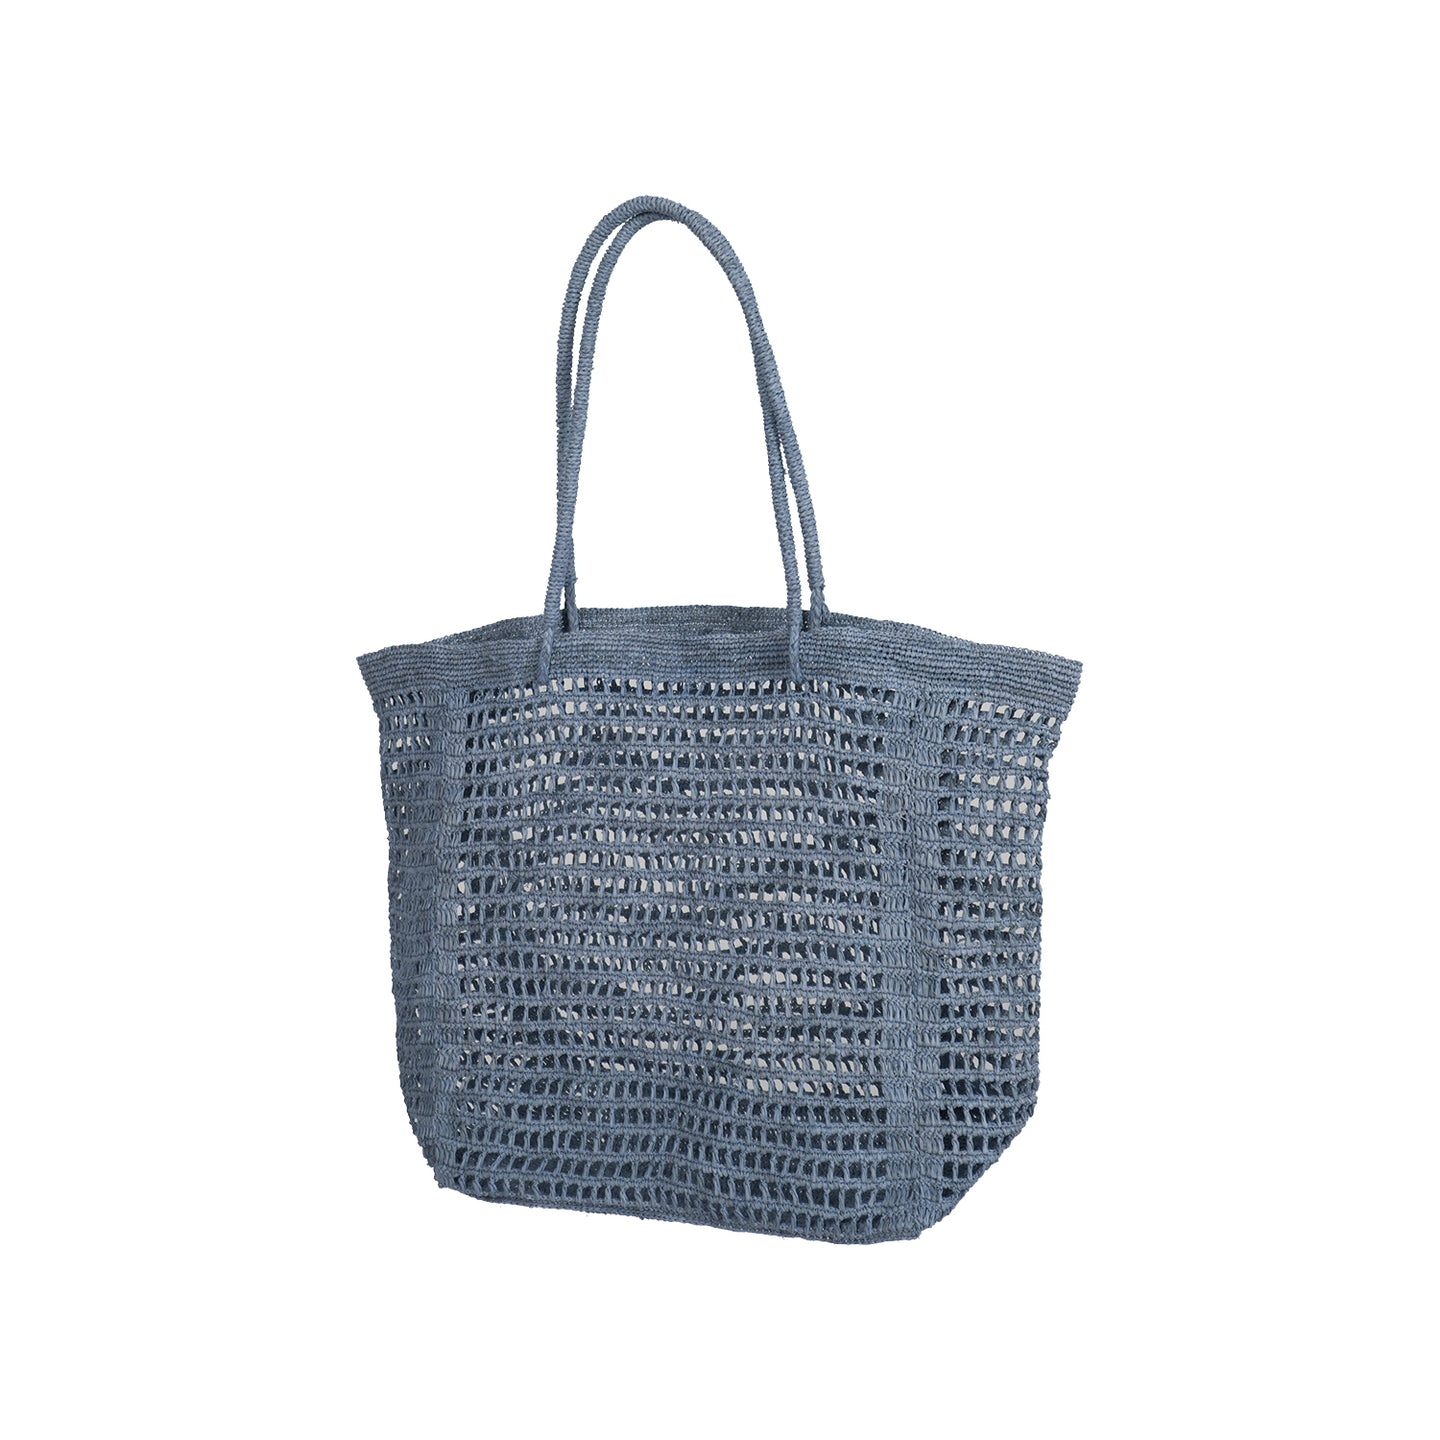 HIT BAG LIGHT GREY.jpg